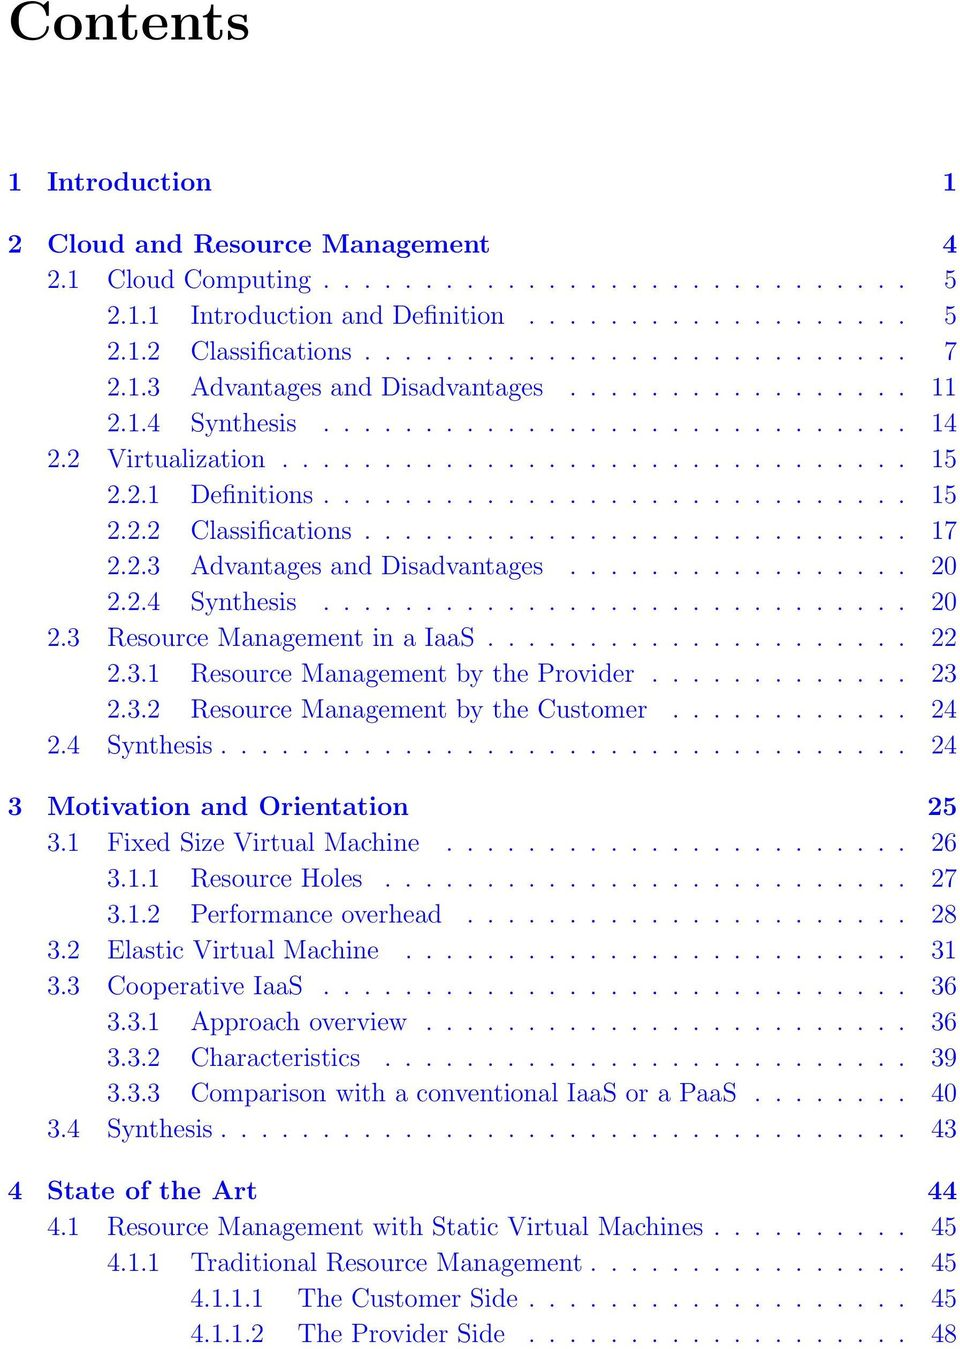 .......................... 17 2.2.3 Advantages and Disadvantages................. 20 2.2.4 Synthesis............................. 20 2.3 Resource Management in a IaaS..................... 22 2.3.1 Resource Management by the Provider.